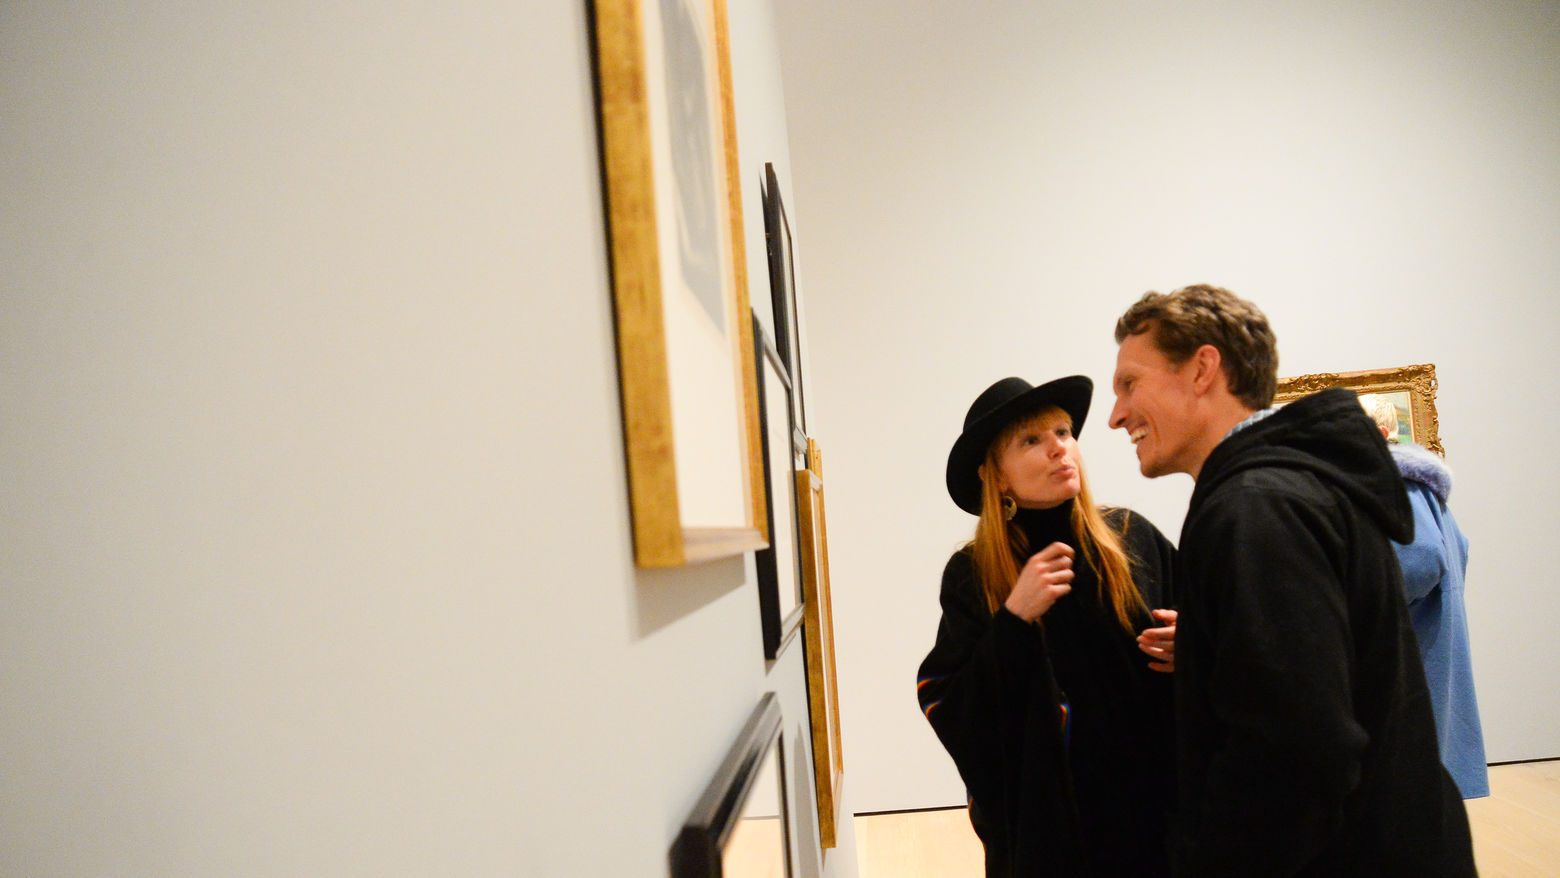 Two people look at paintings on a wall